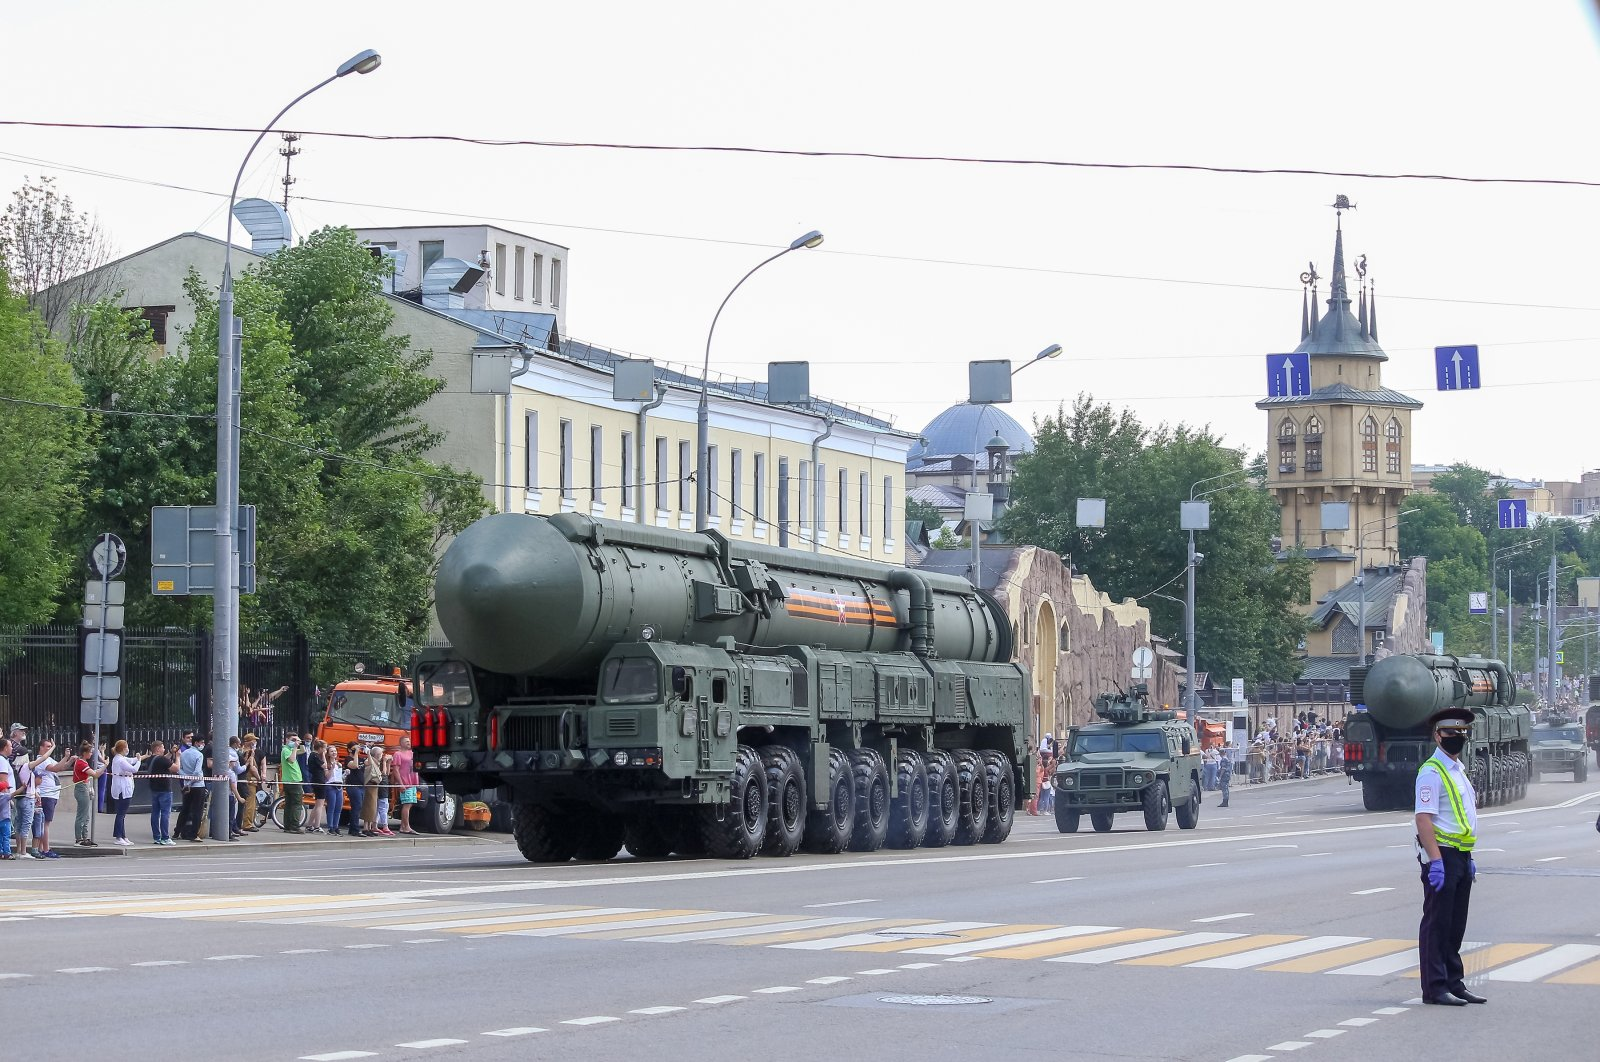 Russian intercontinental ballistic missile RS-24 Yars drives down Krasnaya Presnya street during Moscow Victory Day parade, Moscow, Russia, June 24, 2020. (Shutterstock Photo)